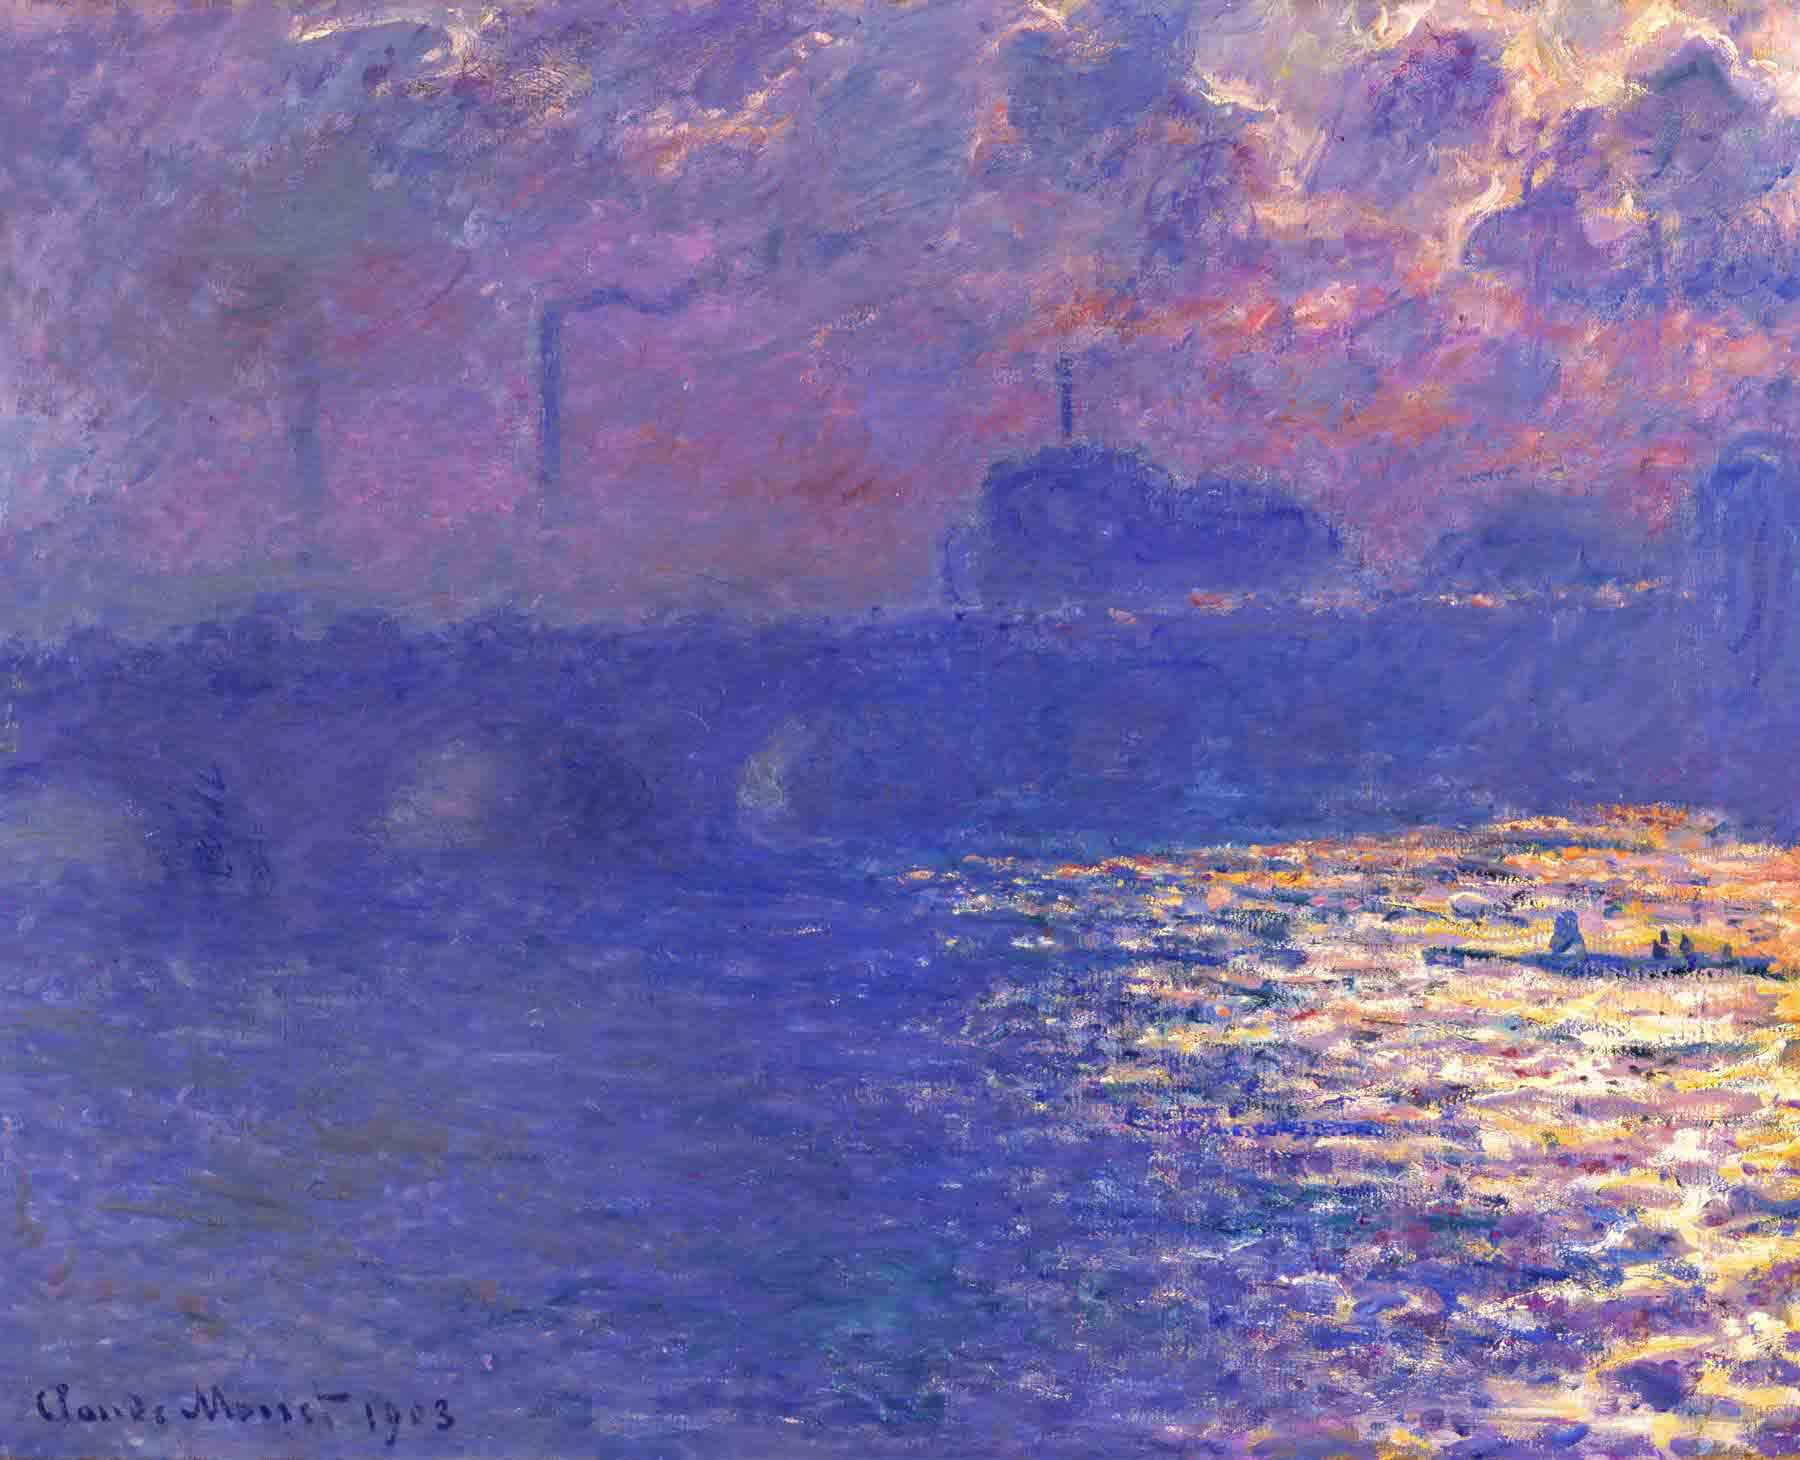 monet-waterloo-bridge-sunlight  effect milwaukee-art-museum Kopie